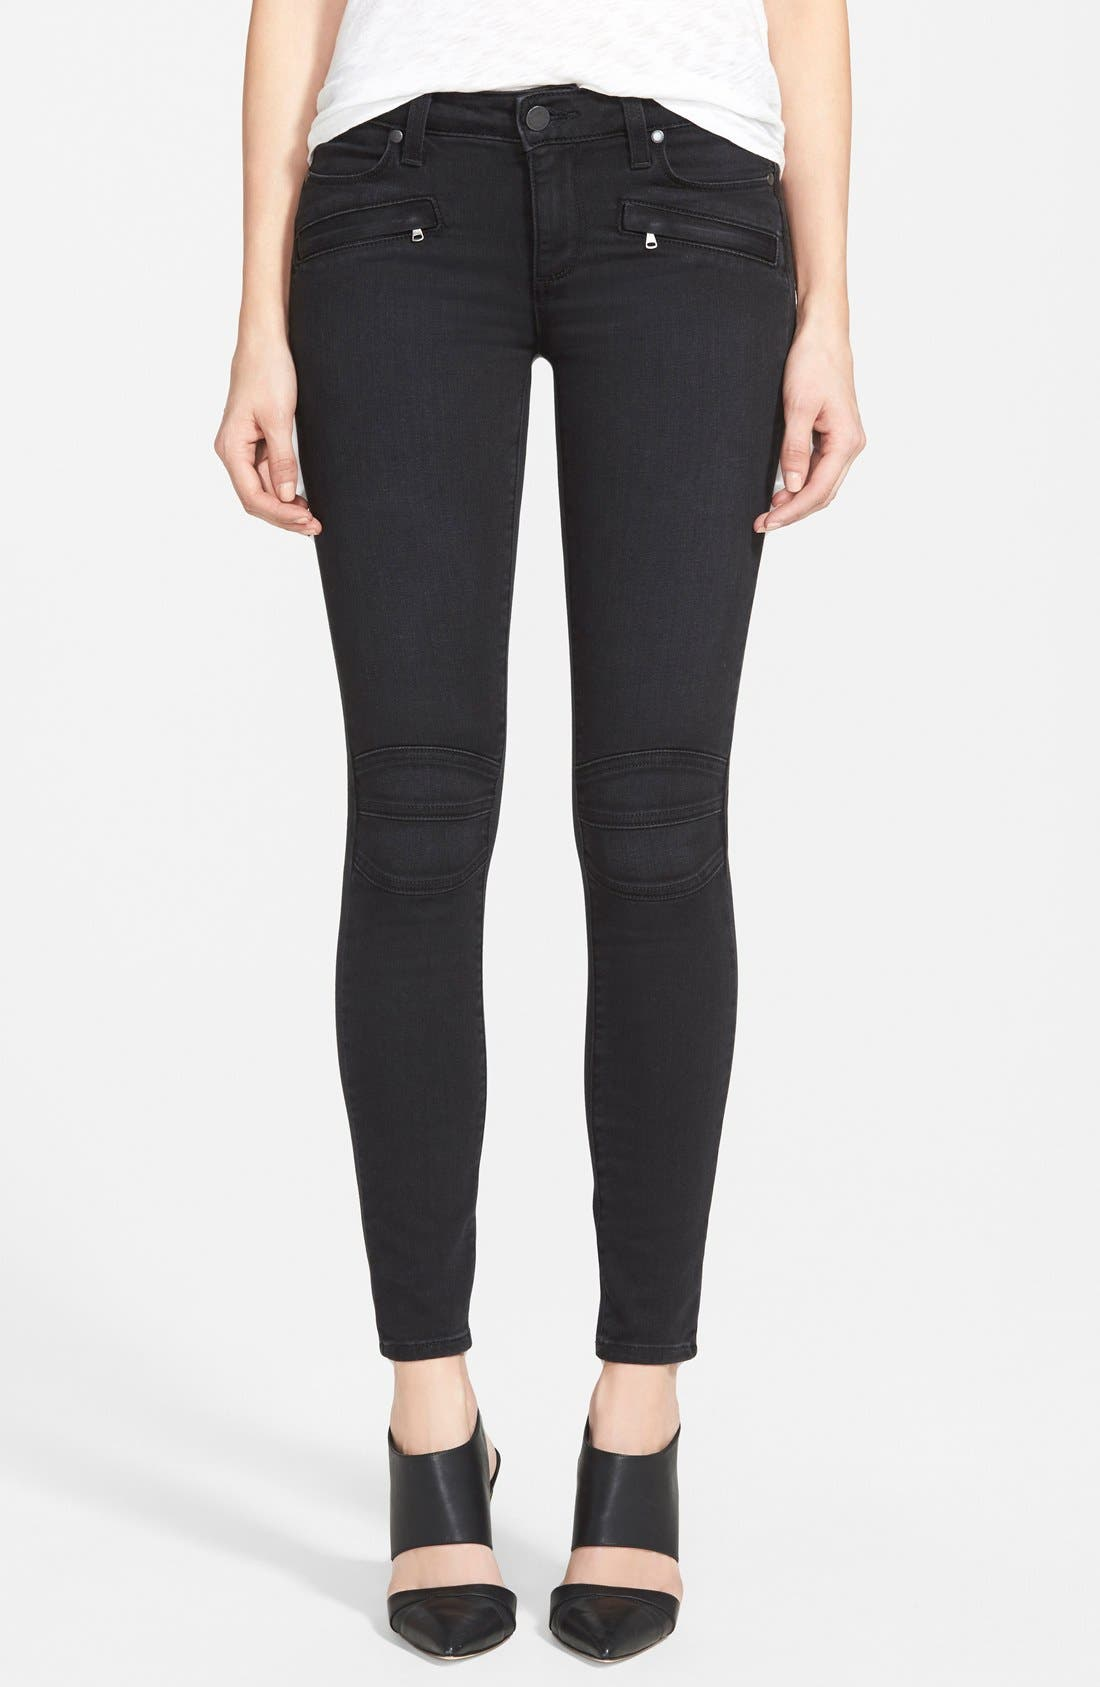 Alternate Image 1 Selected - Paige Denim 'Ollie' Ultra Skinny Jeans (Cleo No Whiskers)